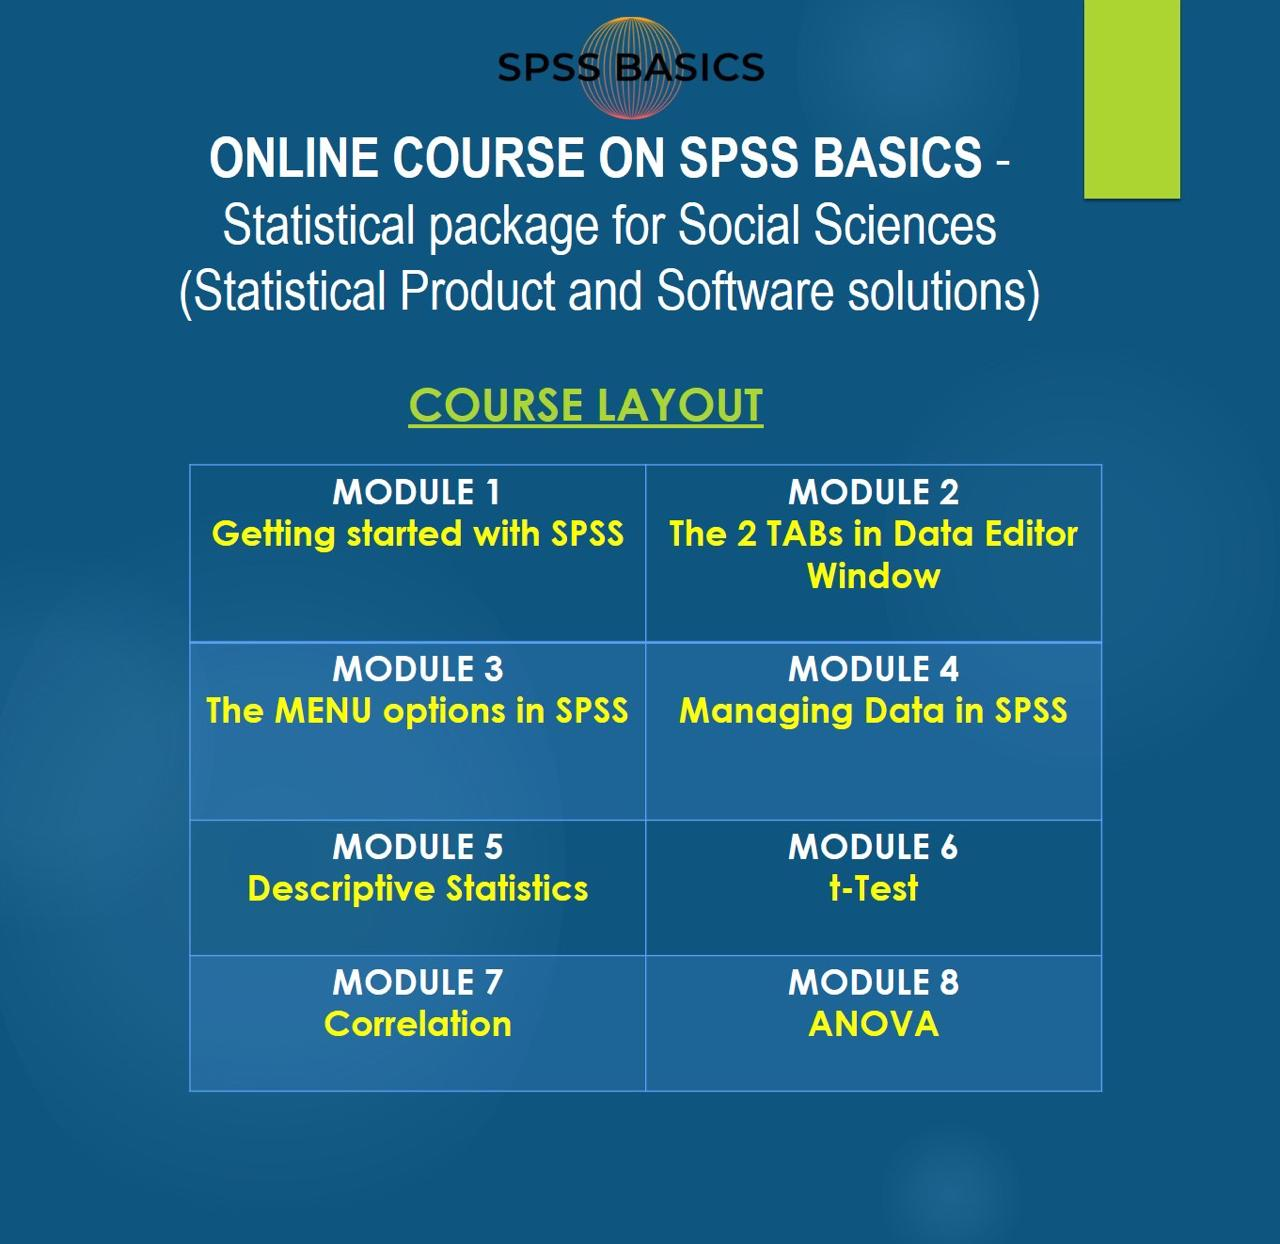 Online Course on SPSS Basics Statistical package for Social Sciences (Statistical Product and Software Solutions)